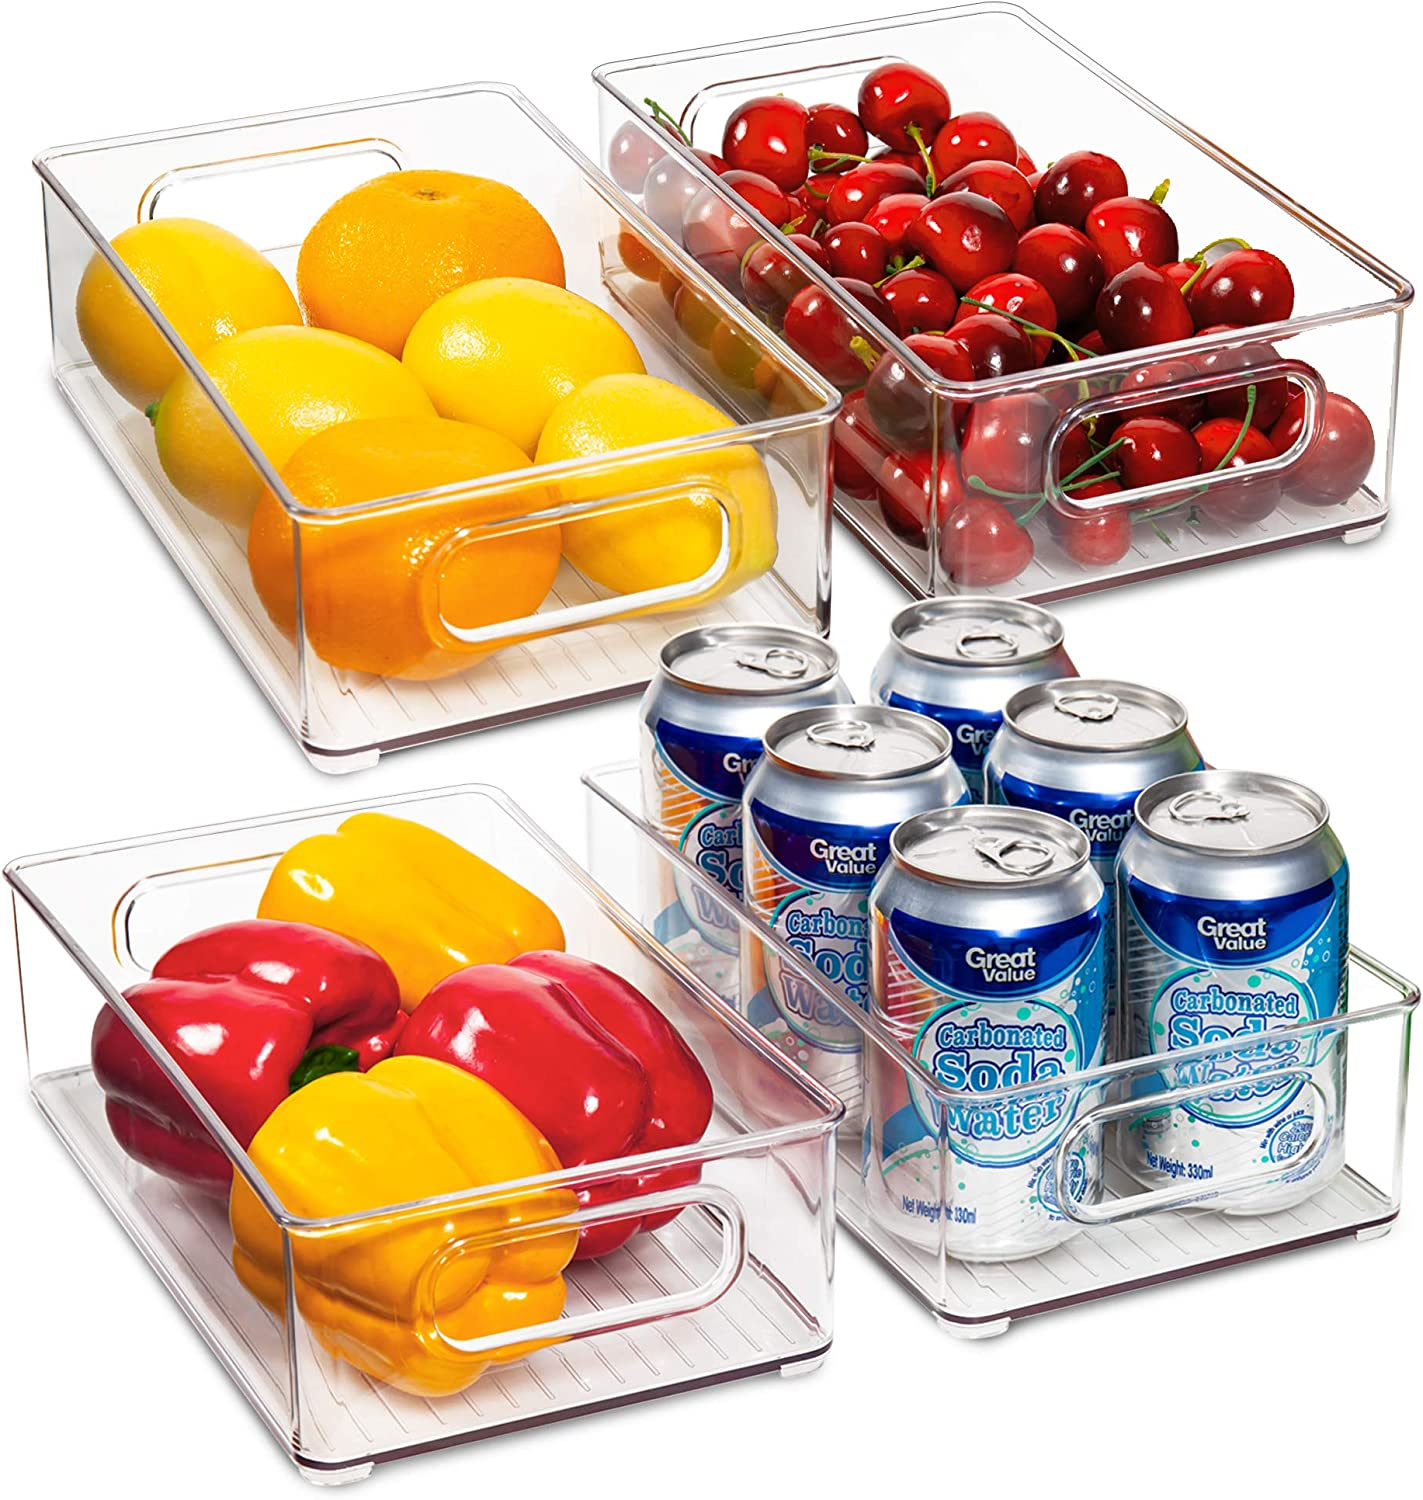 Ecowaare Pantry Storage Organizer Bins, 4 Pack Clear Stackable Food Storage Bins for Refrigerator, Freezer,Cabinet,Kitchen Organization and Storage, BPA Free, 10x 6 x 3 inches